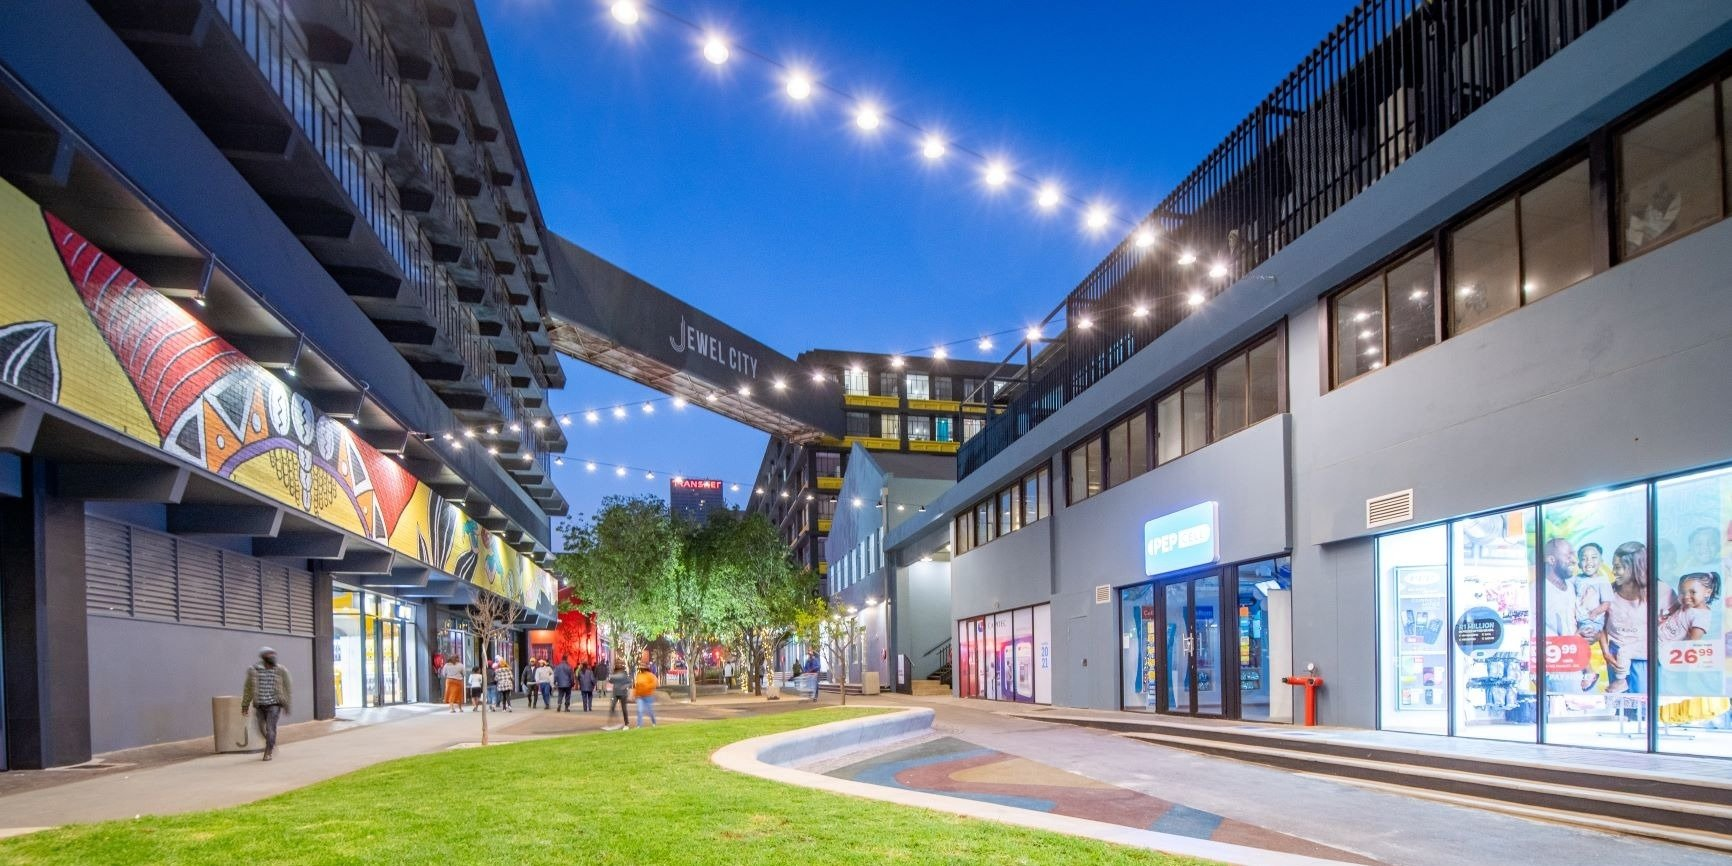 CDC leads $36 million investment round into South African affordable housing platform Divercity